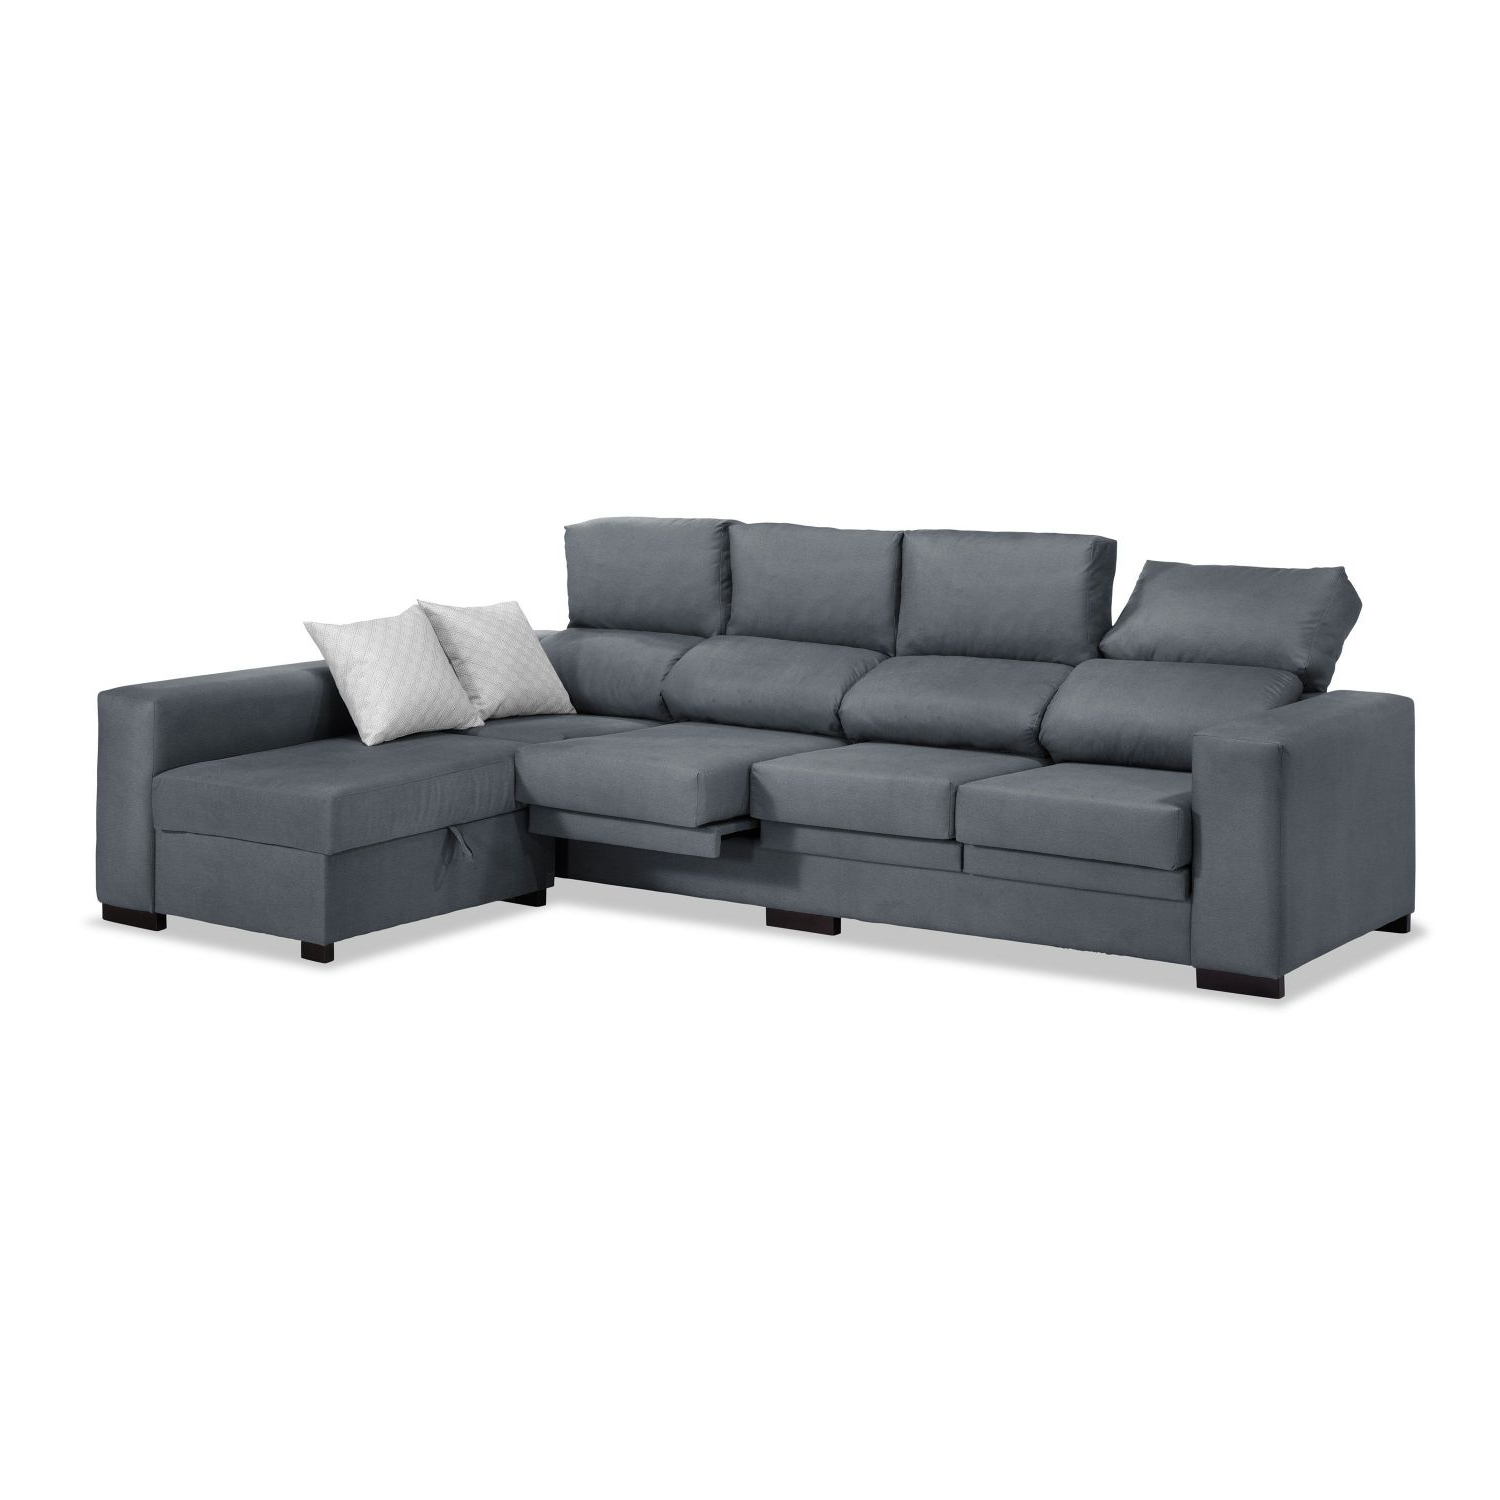 Sofa Chaise Longue 4 Plazas Tqd3 sofà Chaise Longue 4 Plazas Marengo 270 Cm